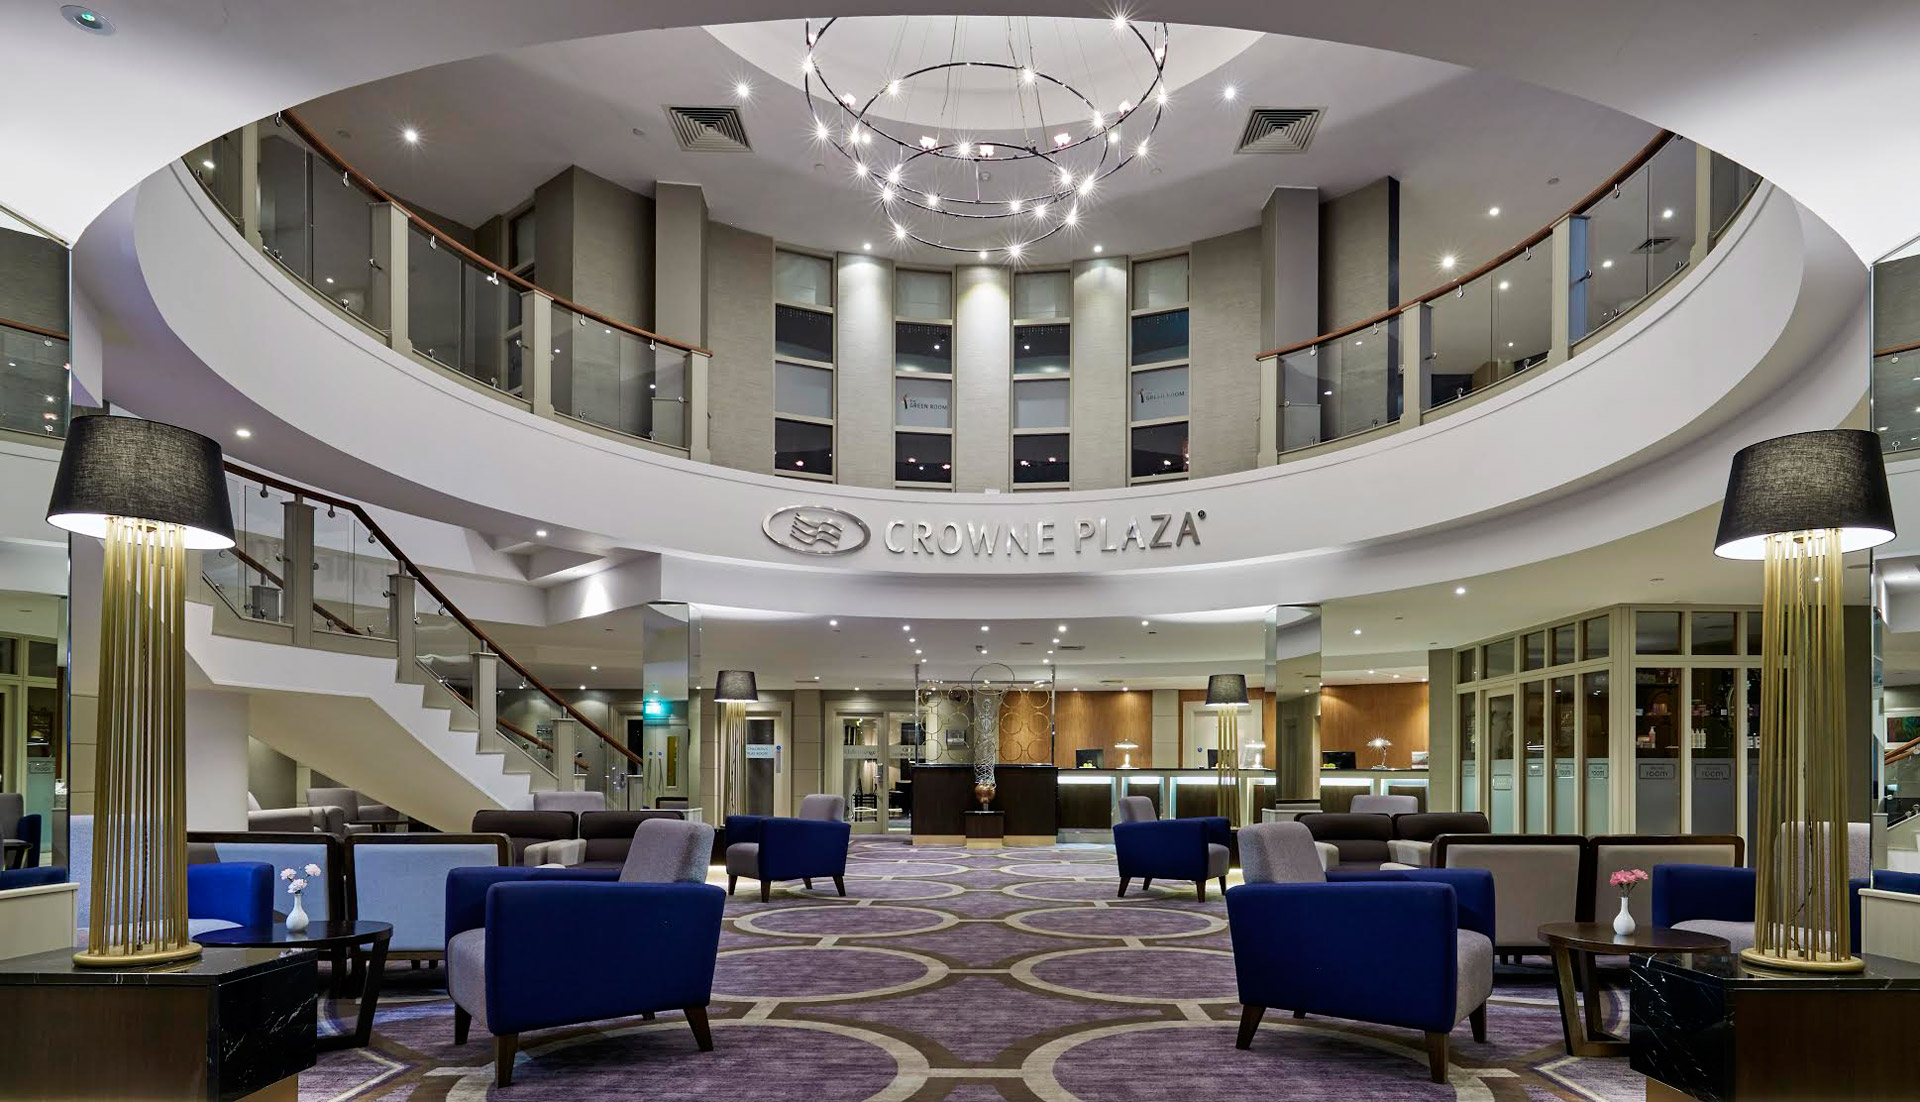 Our Banjul floor lamps add luxury to the Crowne Plaza Belfast